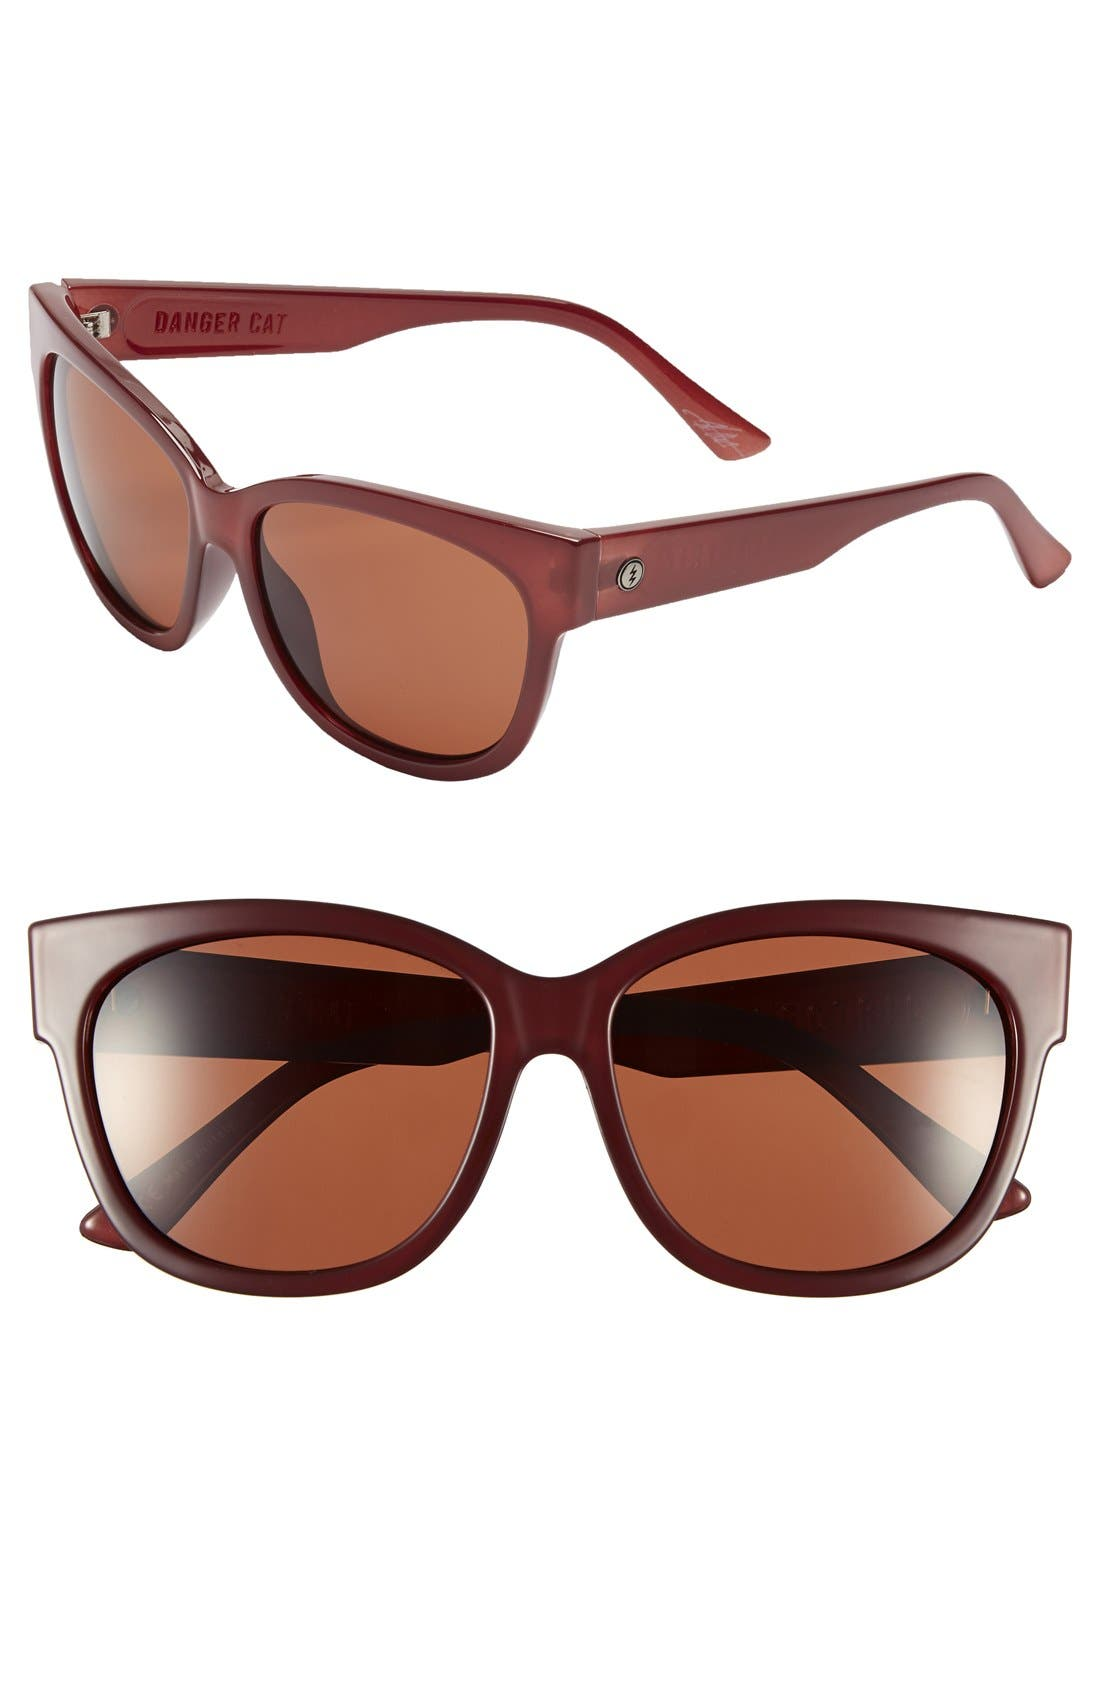 'Danger Cat' 58mm Retro Sunglasses,                         Main,                         color,